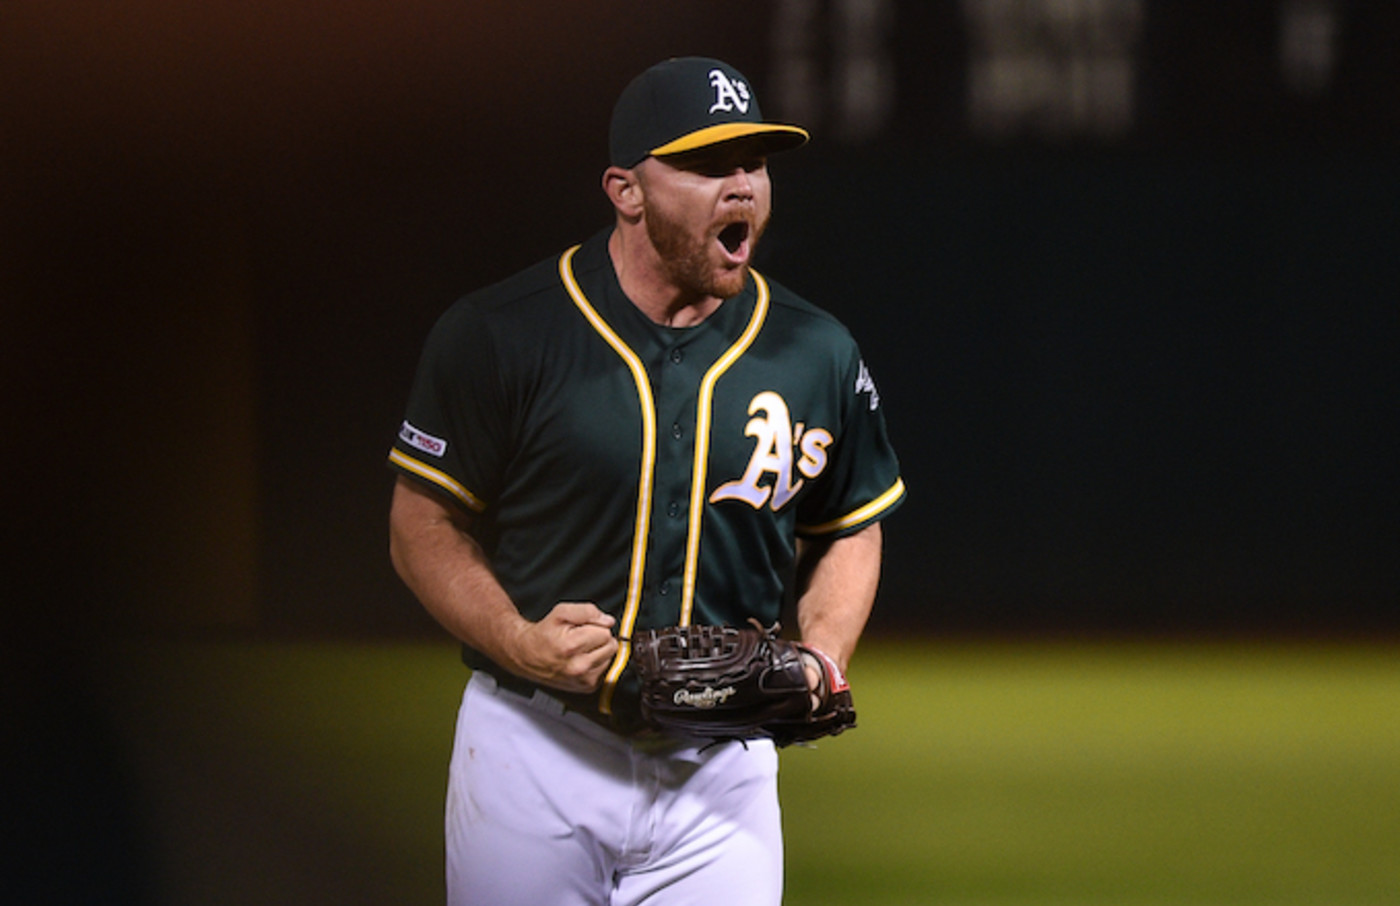 Liam Hendriks celebrates after recording the final out in the ninth inning.